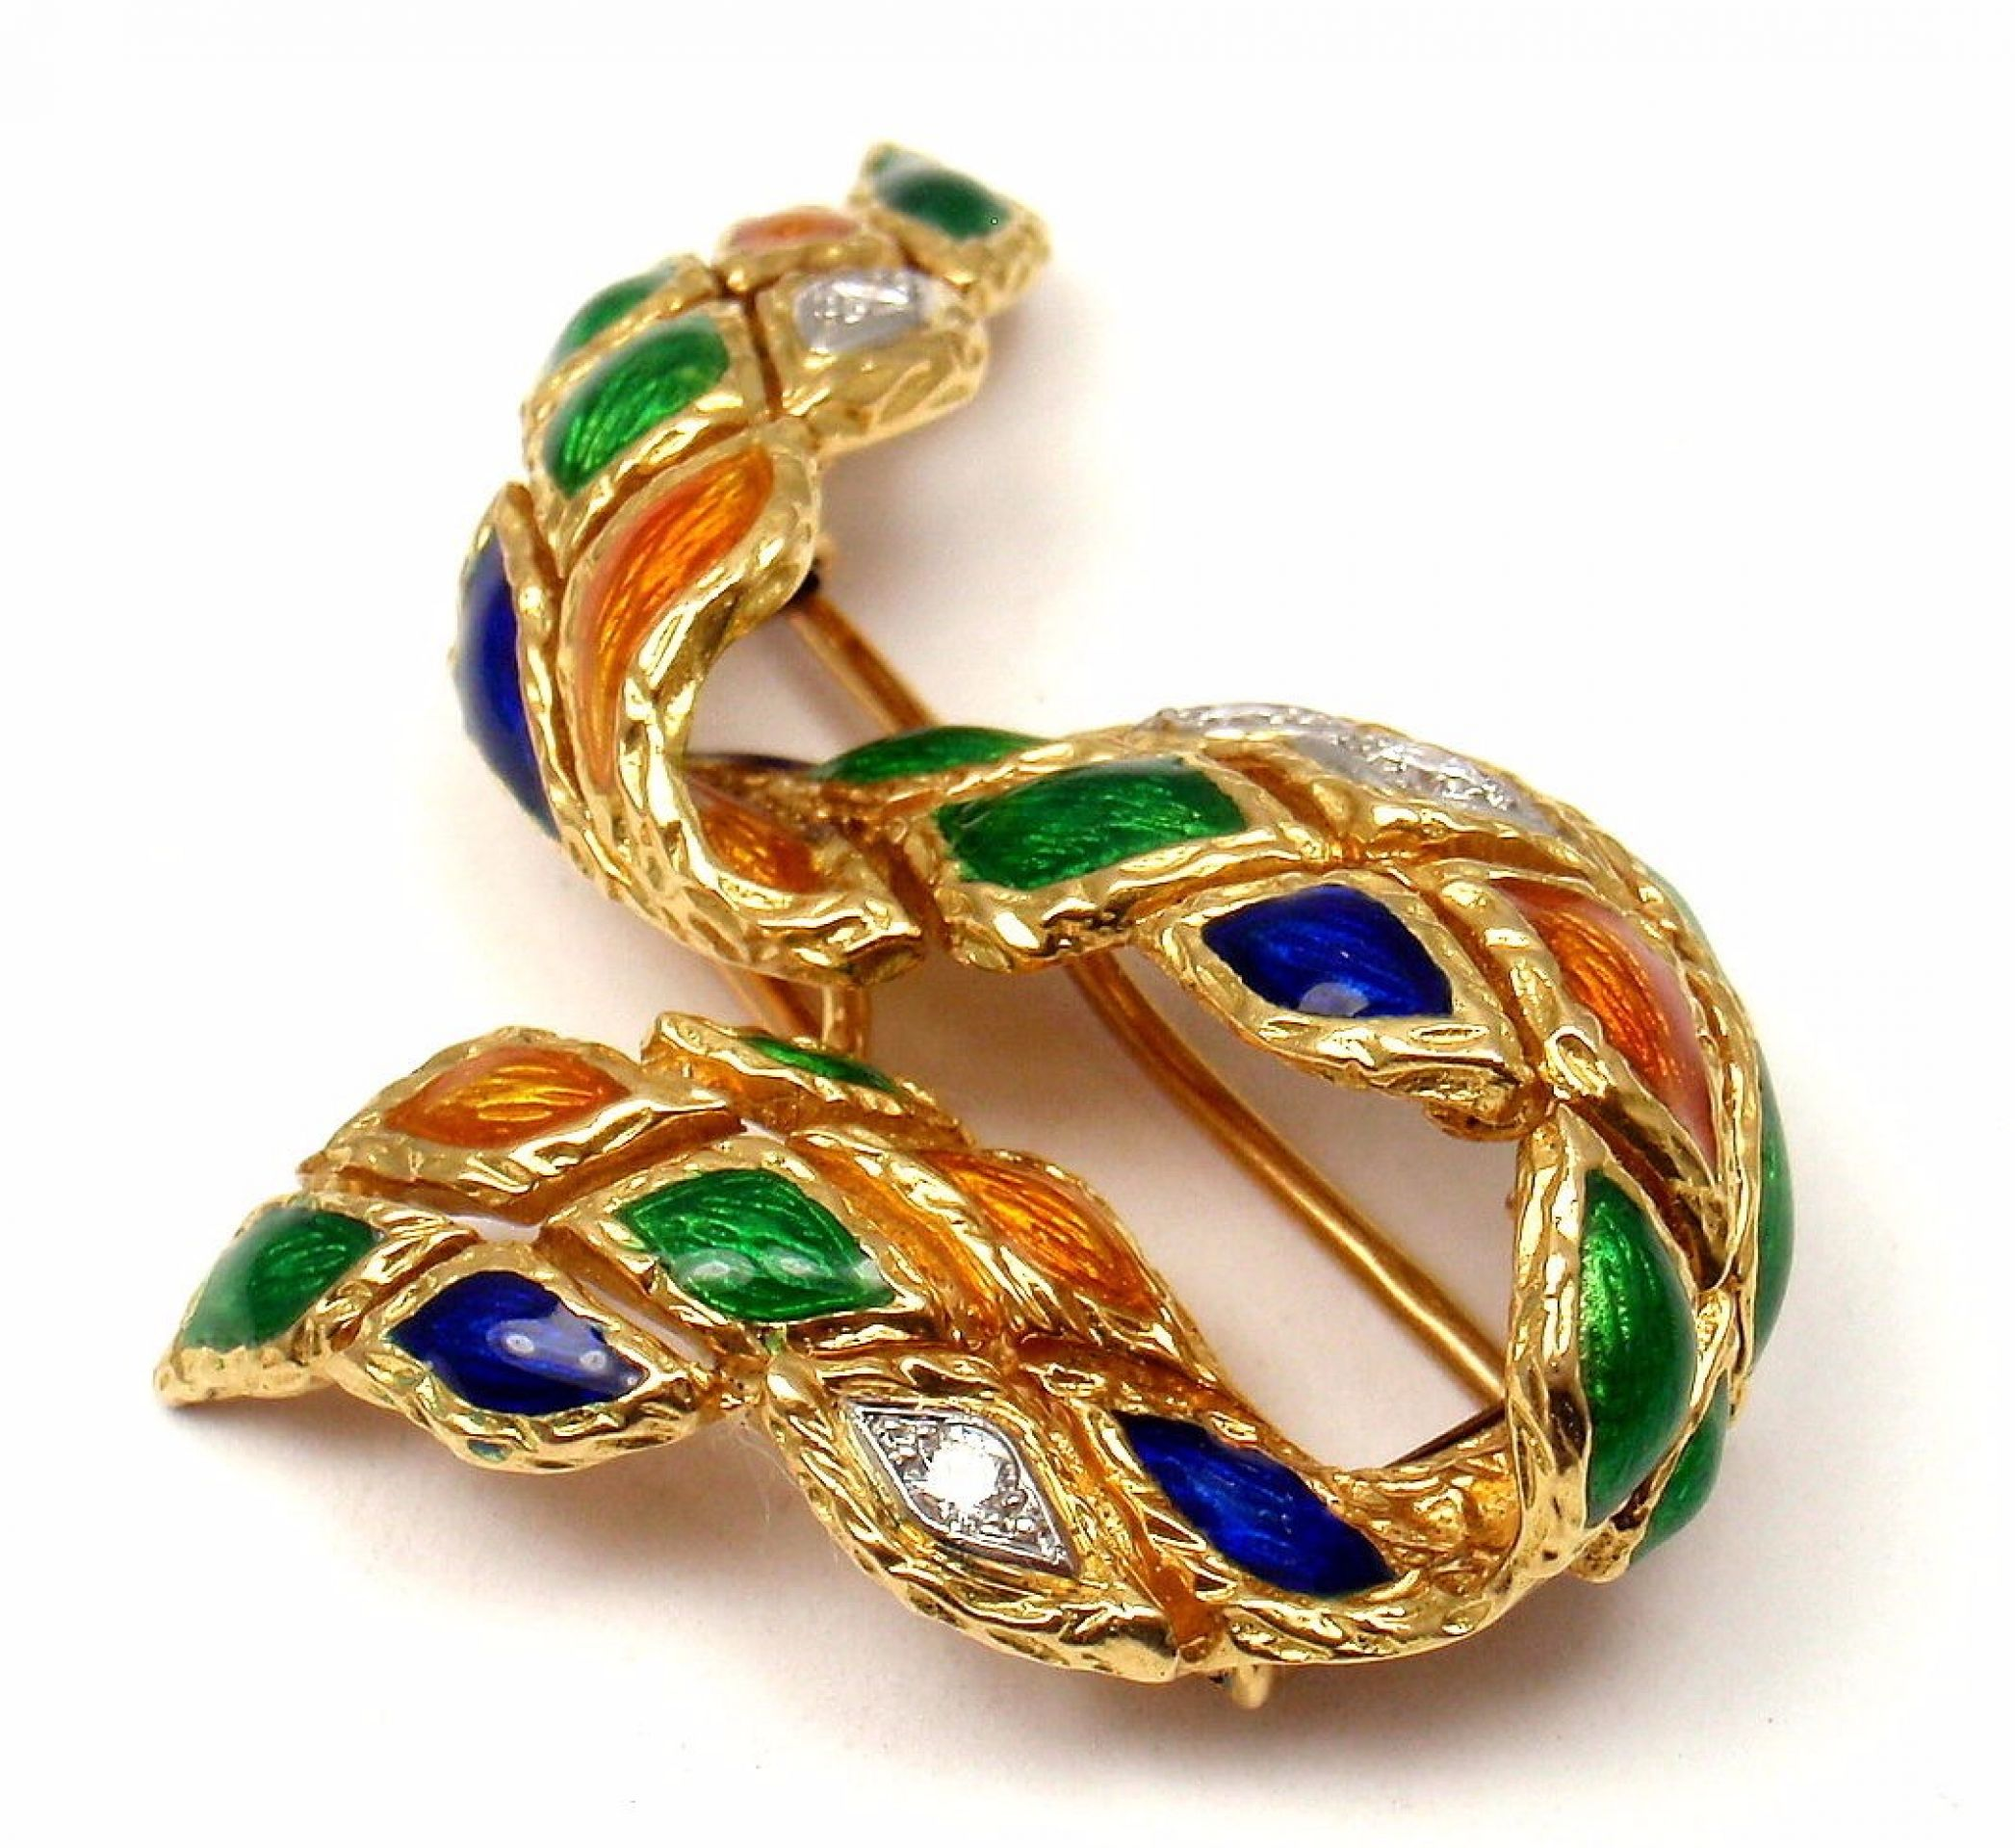 Vintage French Mauboussin 18k Yellow Gold Enamel Harlequin Diamond Brooch Pin